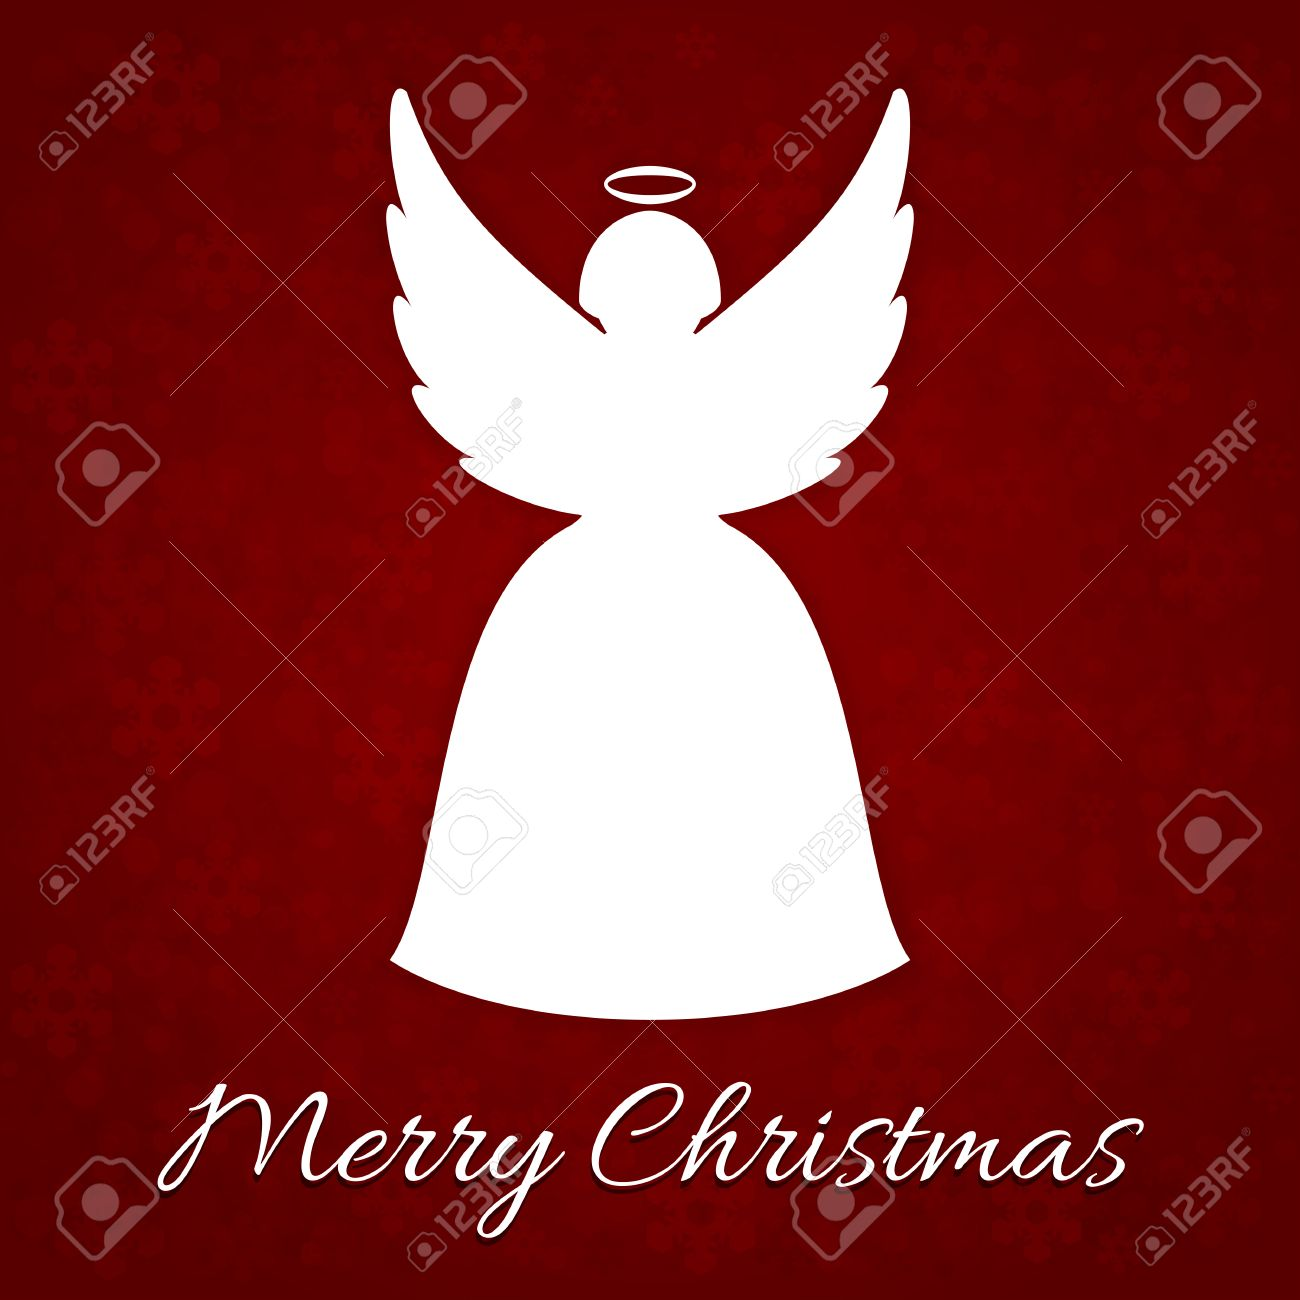 A Very Merry Christmas card with angel Stock Vector - 22799744